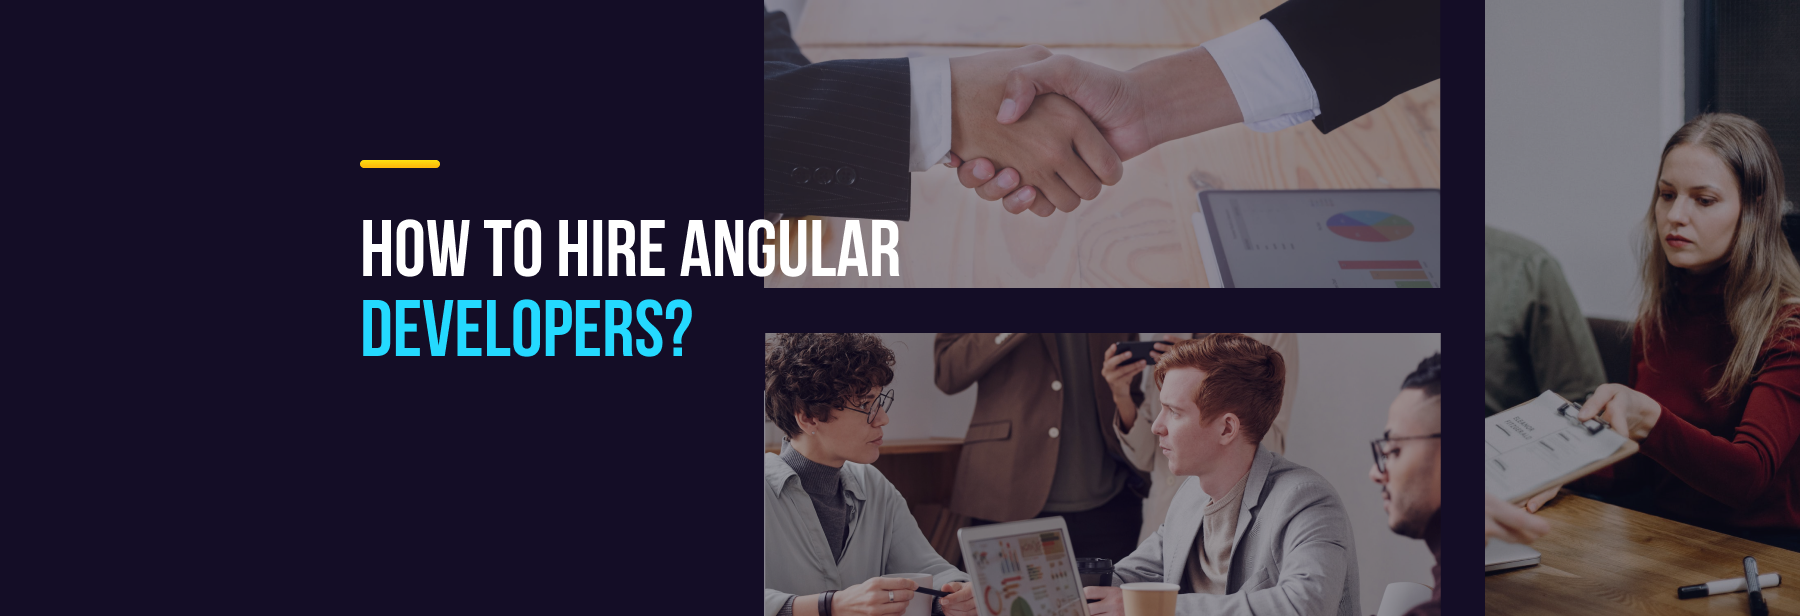 how to hire angular developers